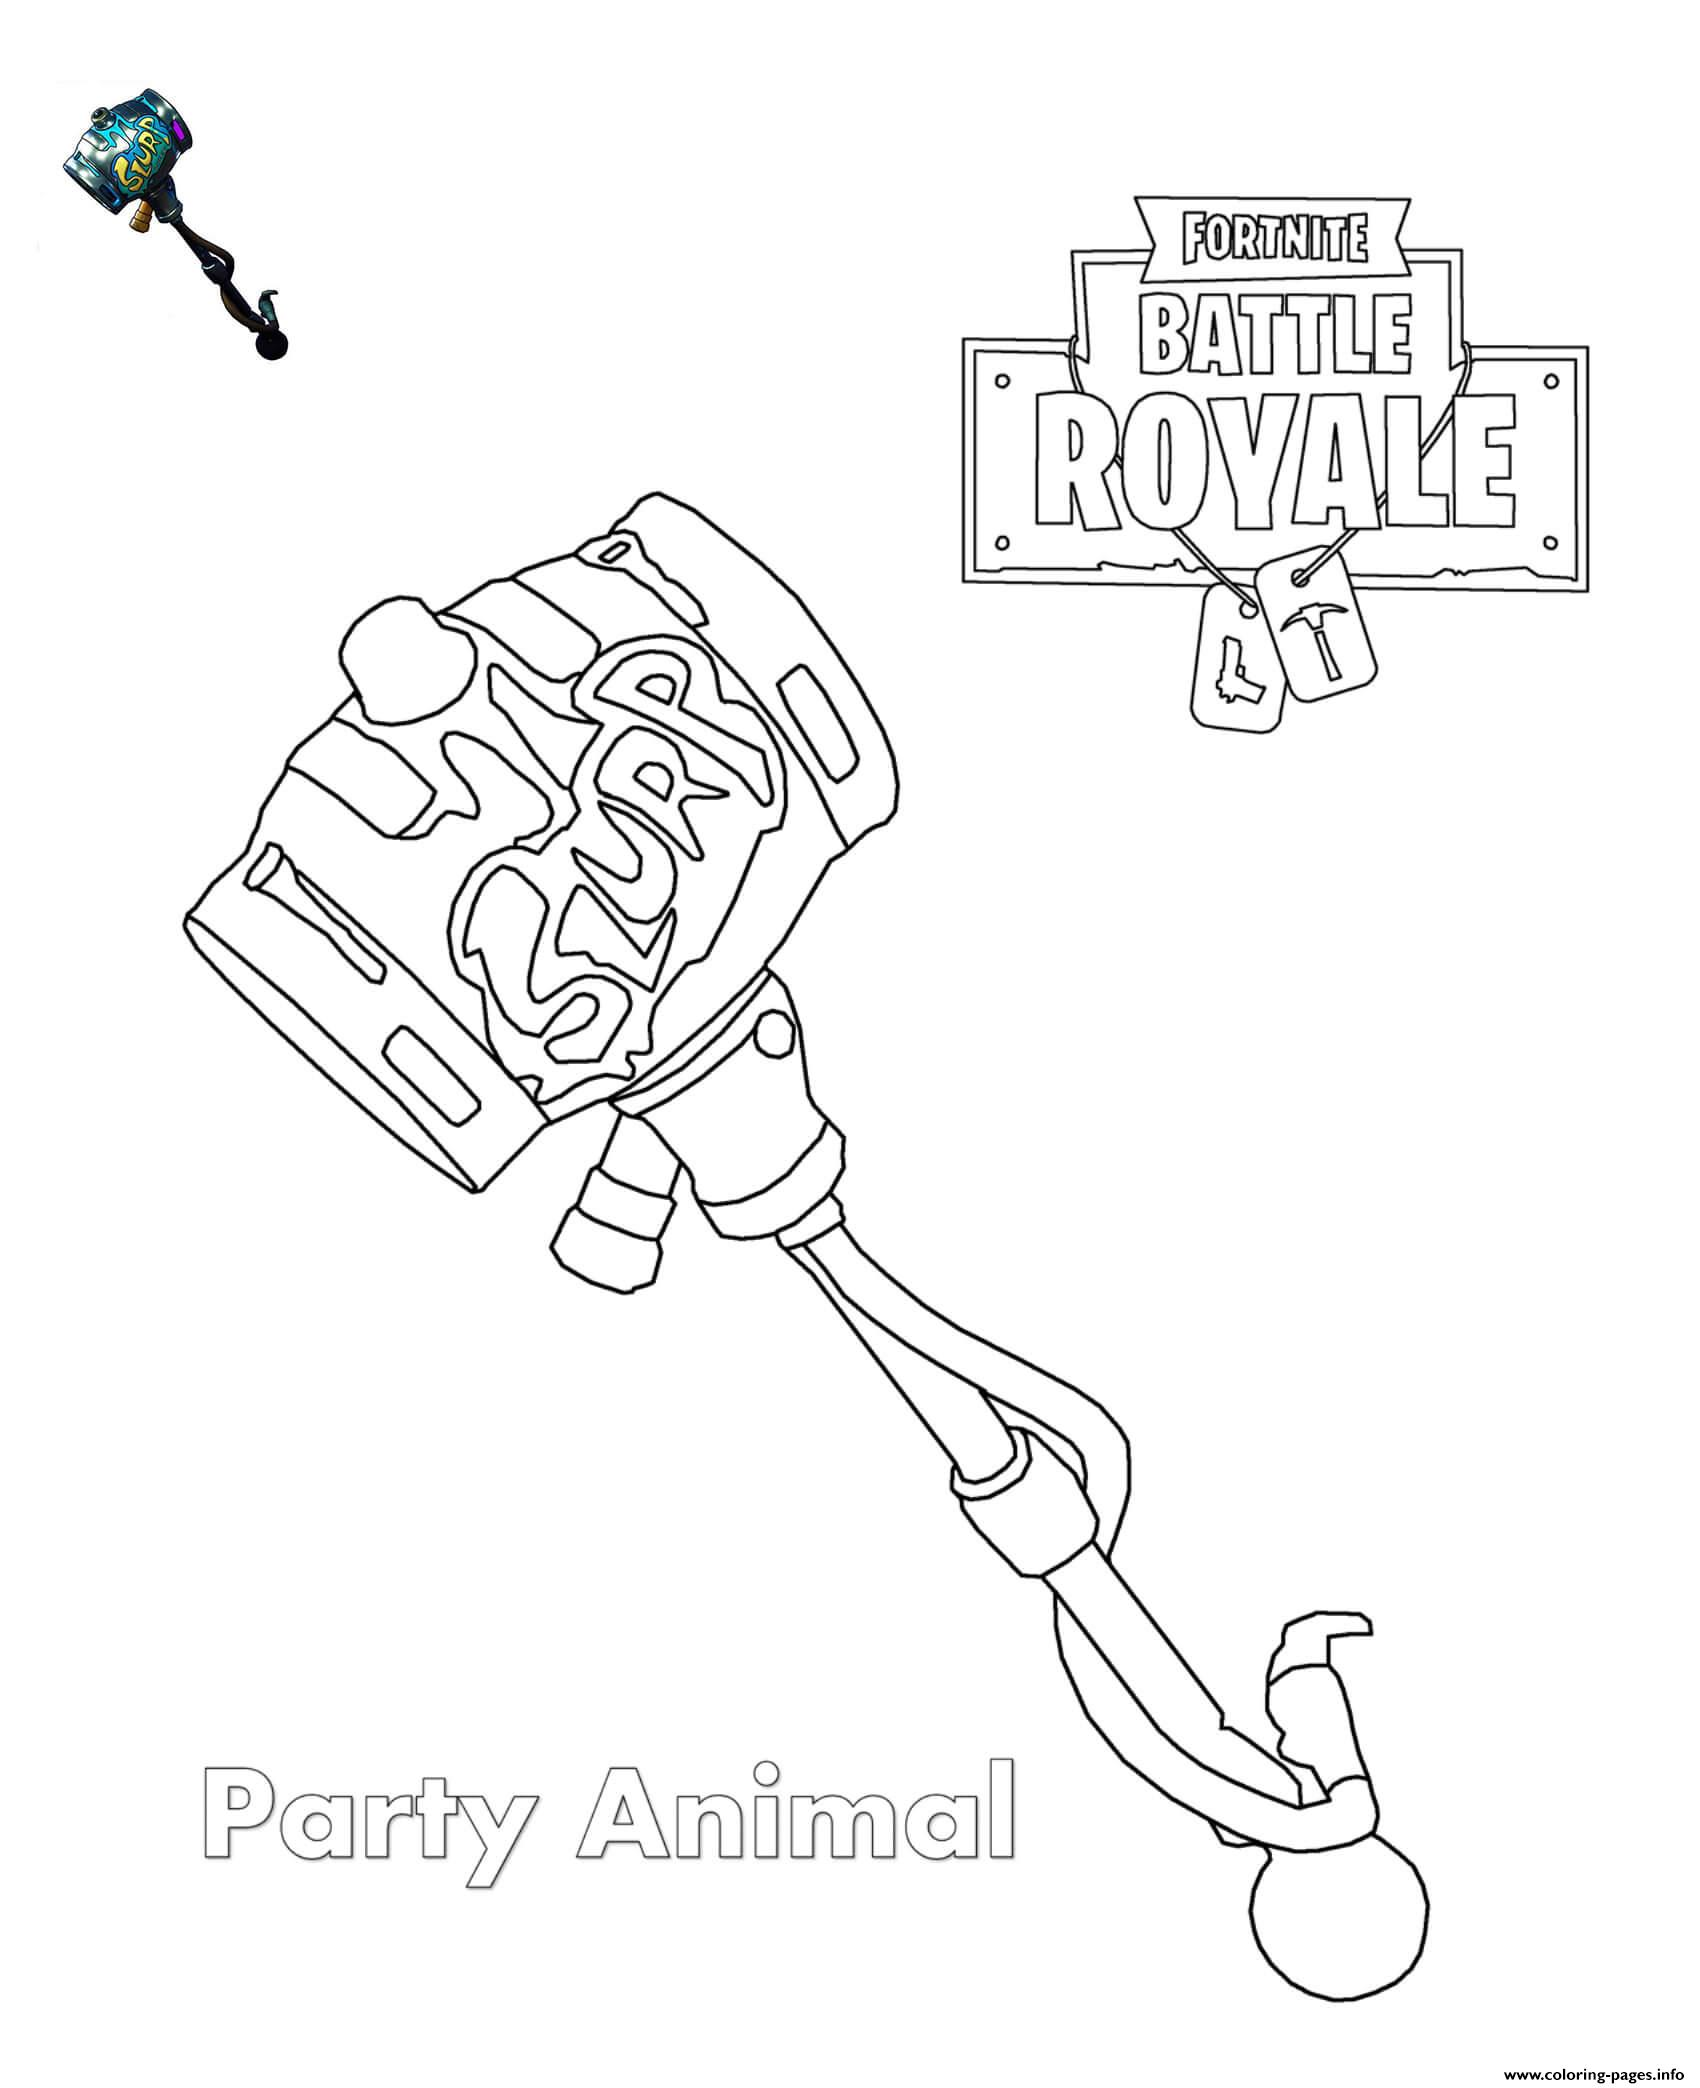 Party Animal Fortnite Coloring Pages Printable